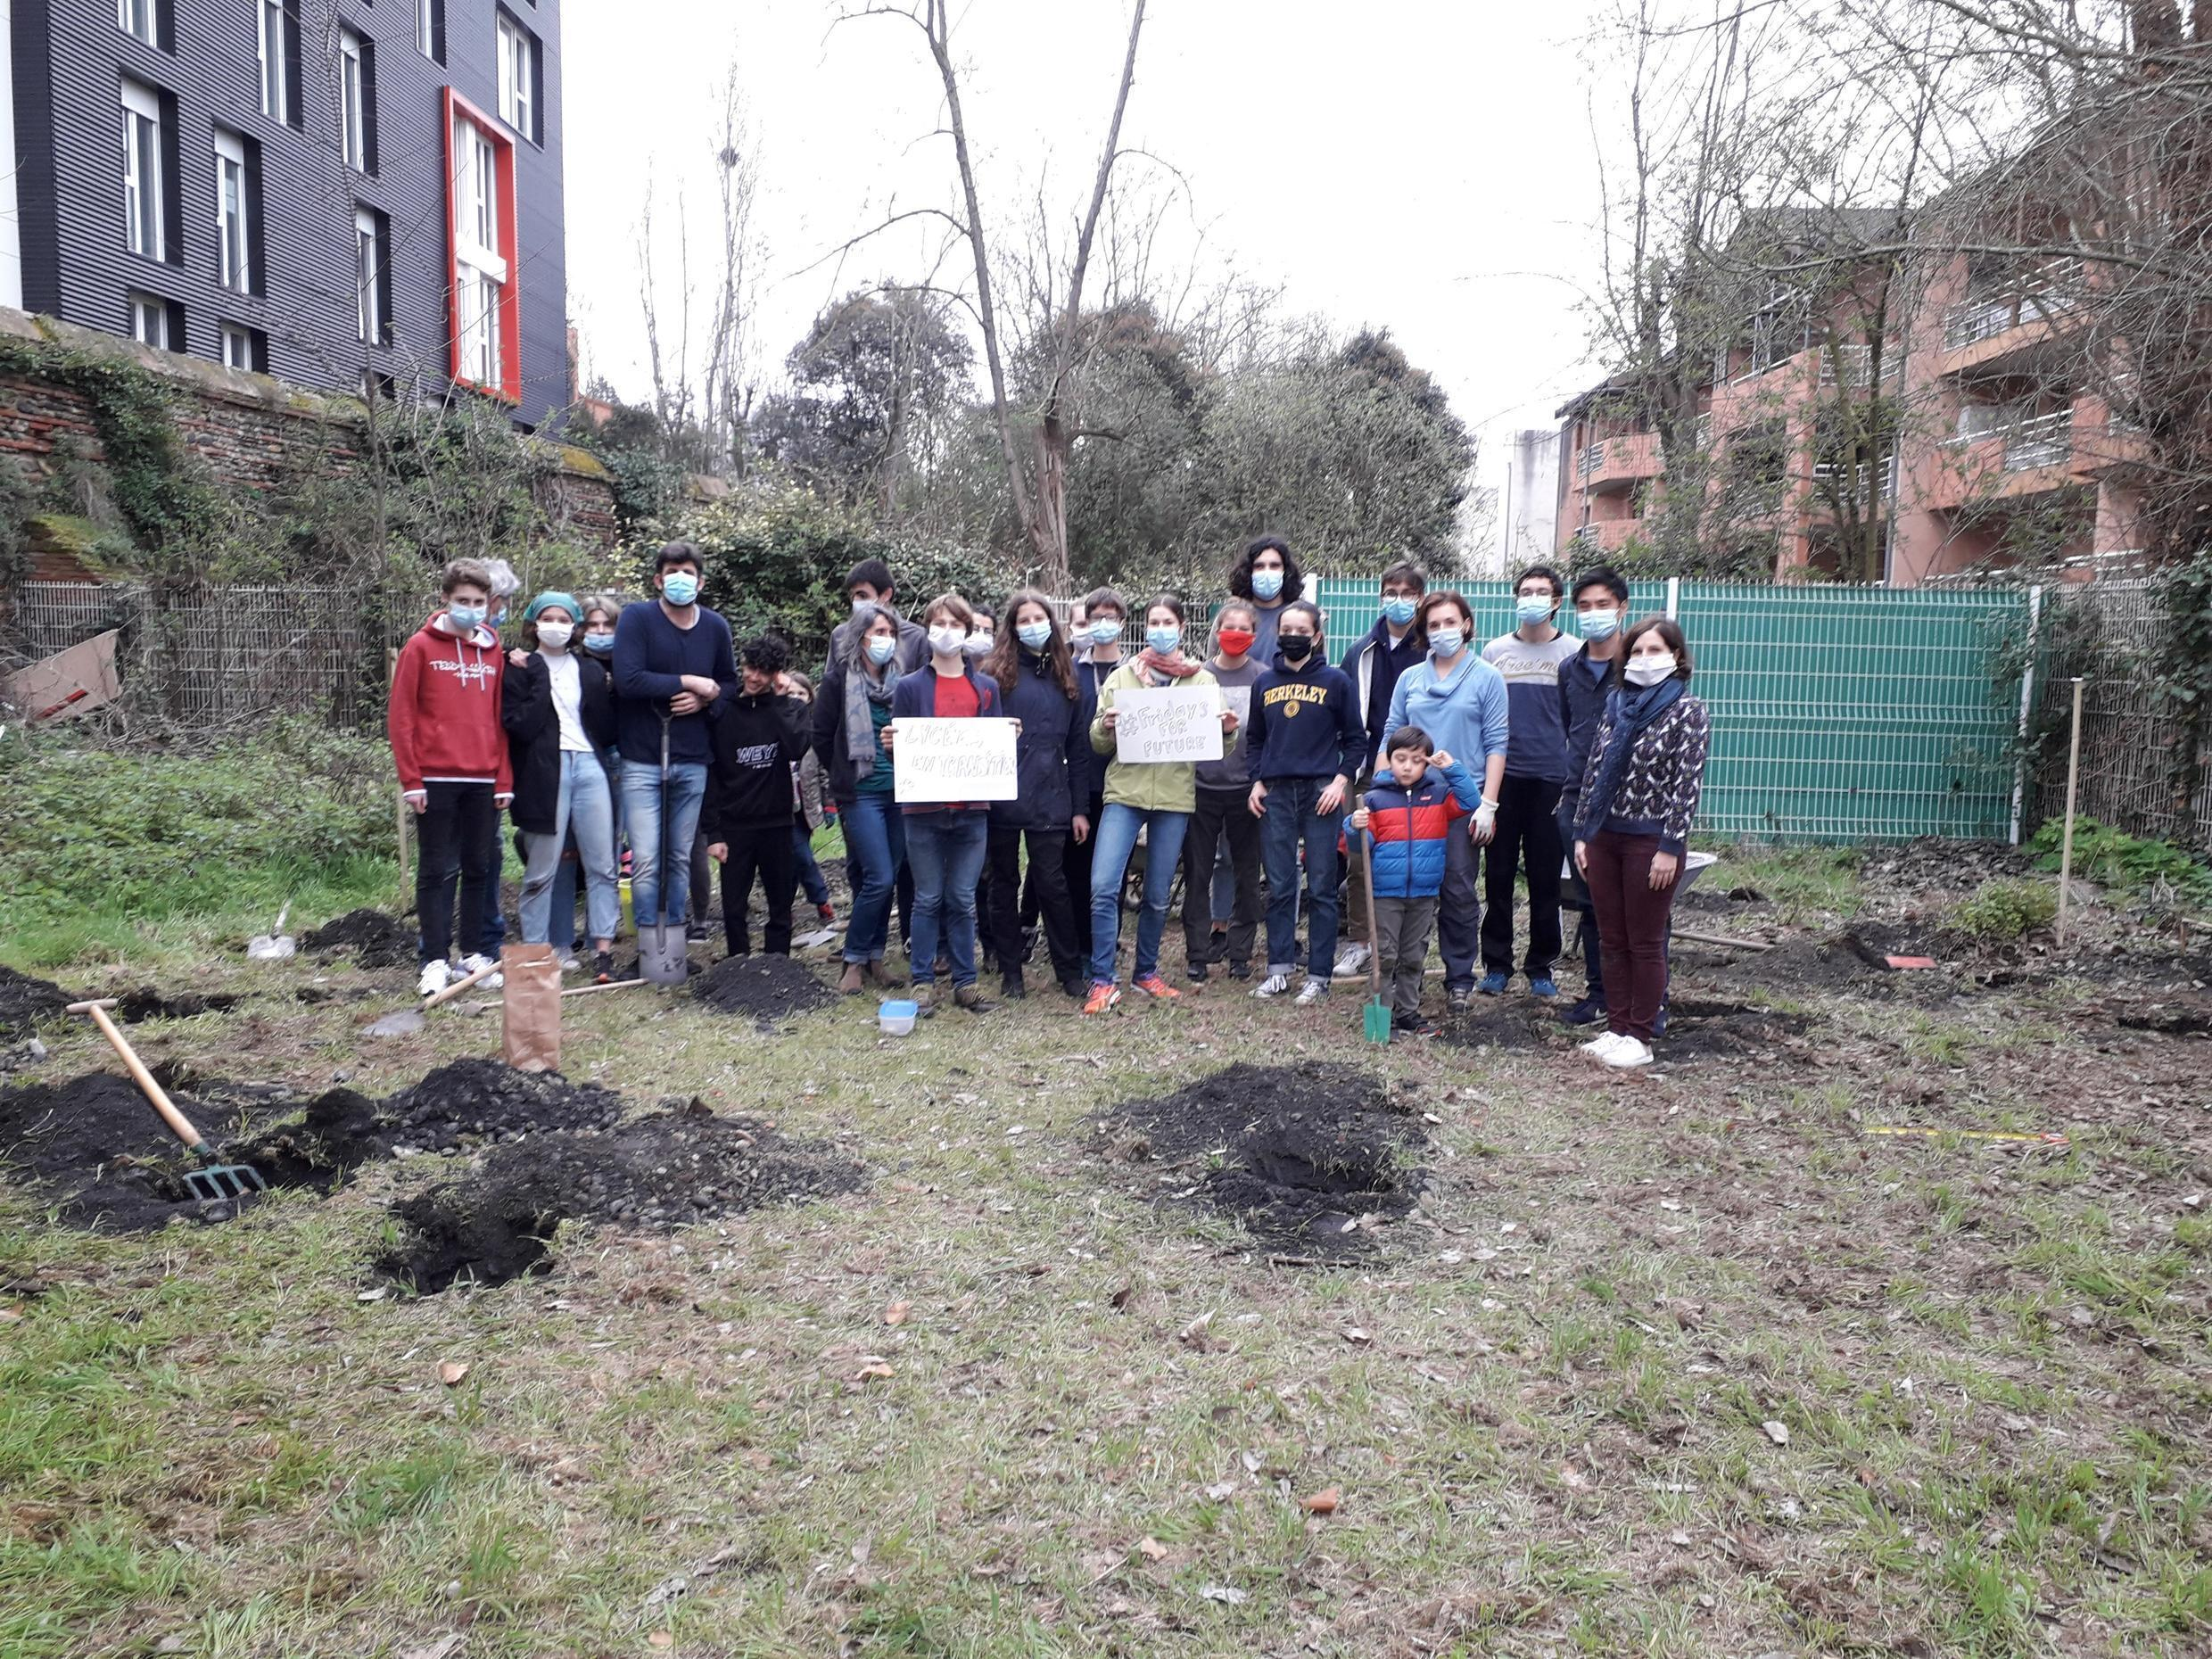 Students from Marcelin Berthelot high school in Toulouse are planting trees in a biodiversity corridor, March 2021_Credit Pauline Bandelier